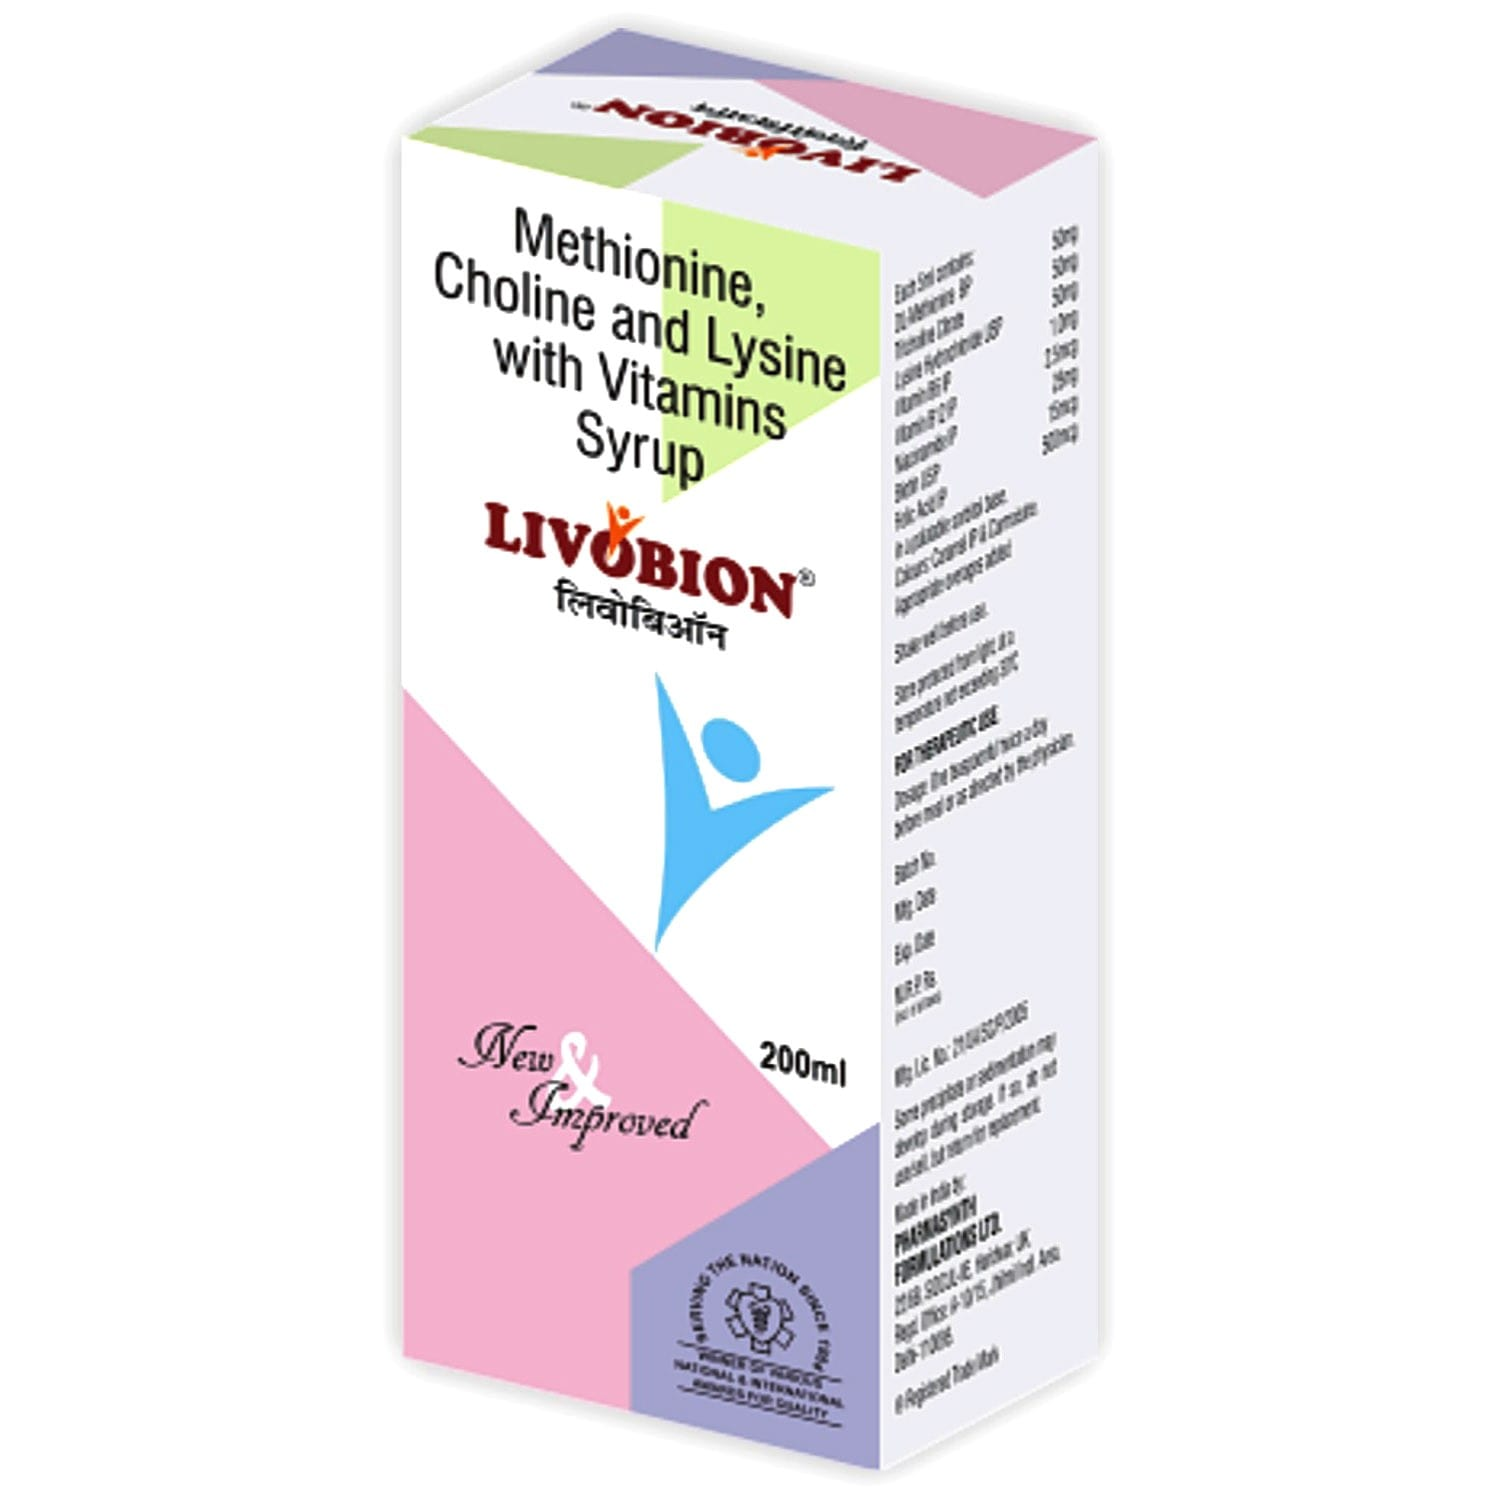 LIVOBION SYRUP